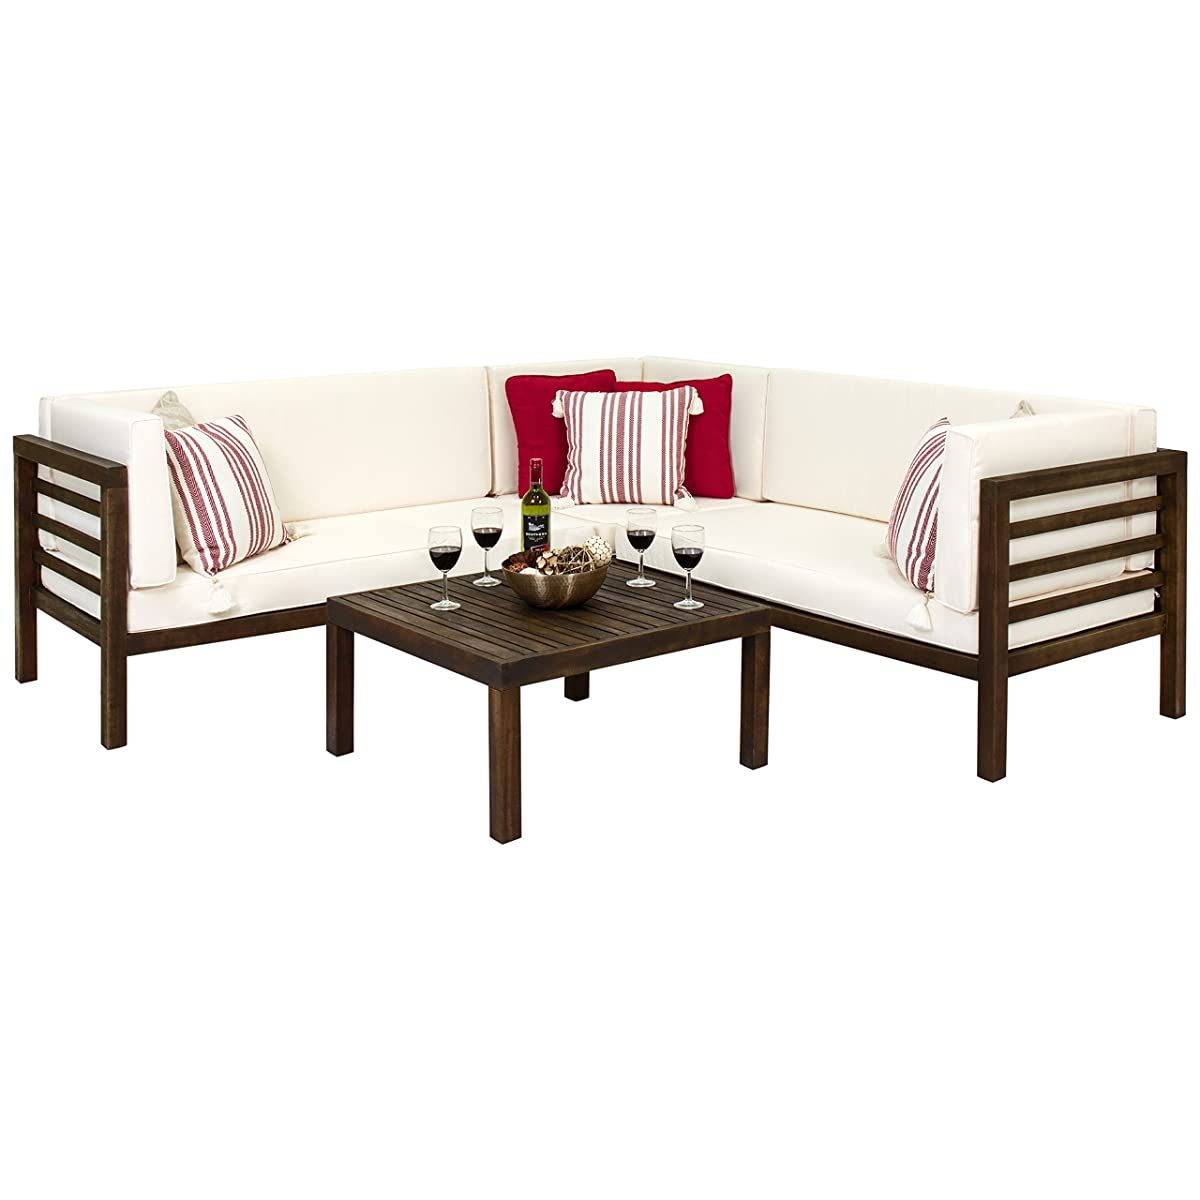 Best Choice Products 4-Piece Acacia Wood Outdoor Patio Sectional Sofa Set w/Water Resistant Cushions, Table - Espresso